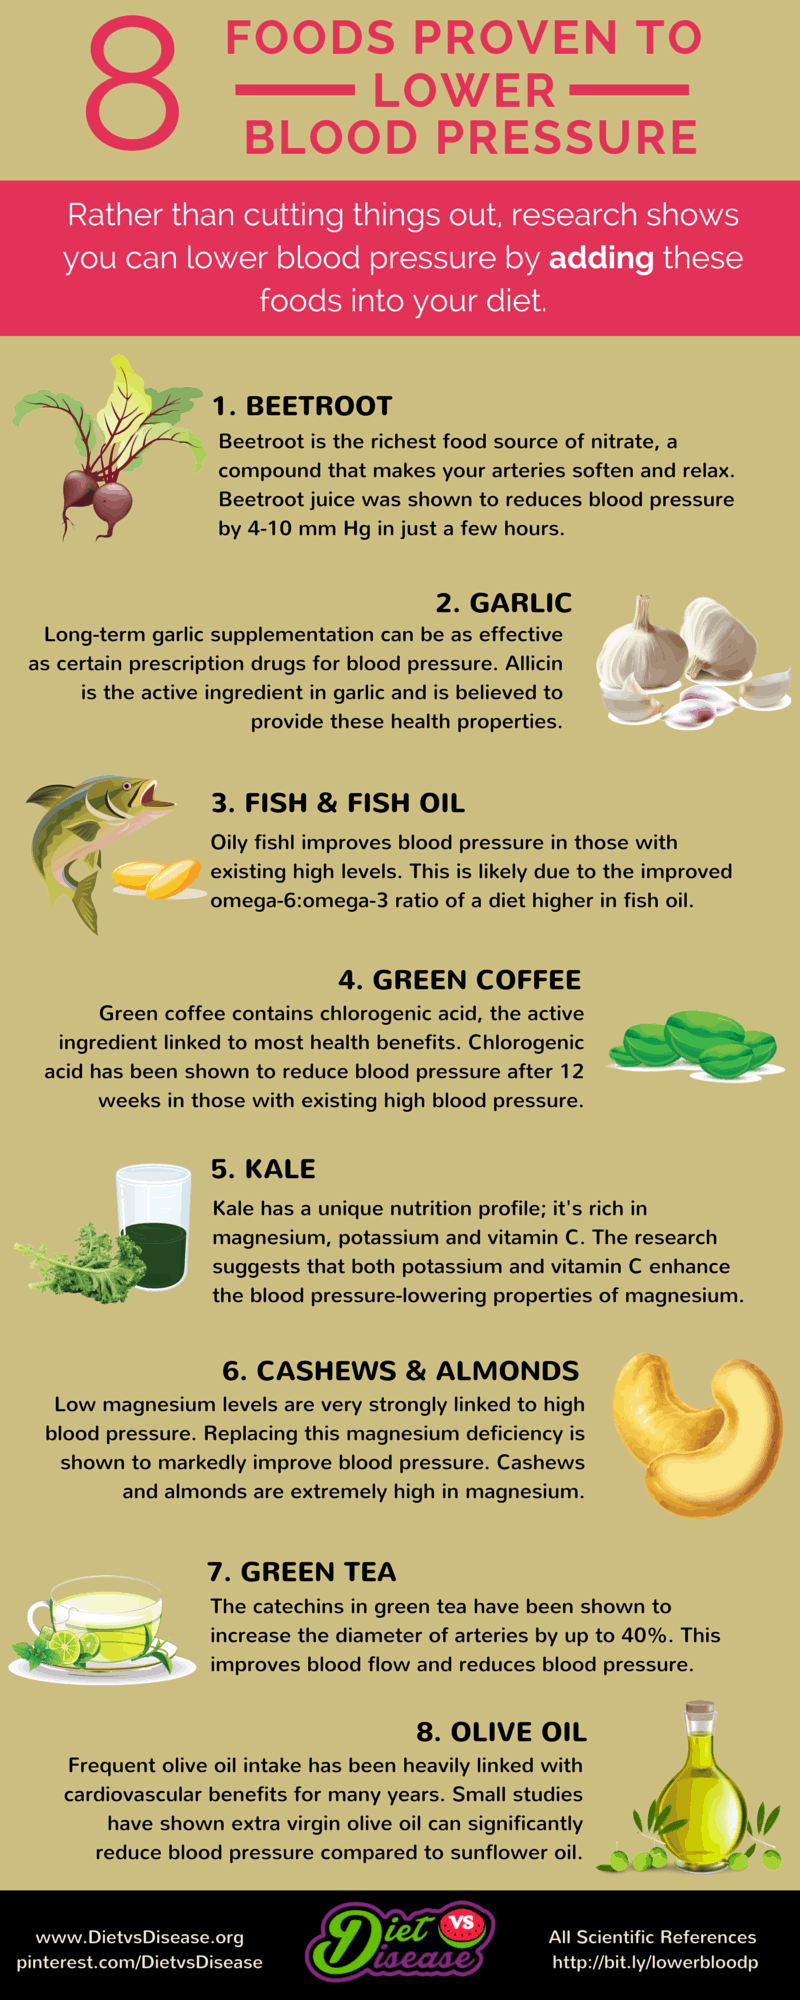 foods to lower blood pressure infographic